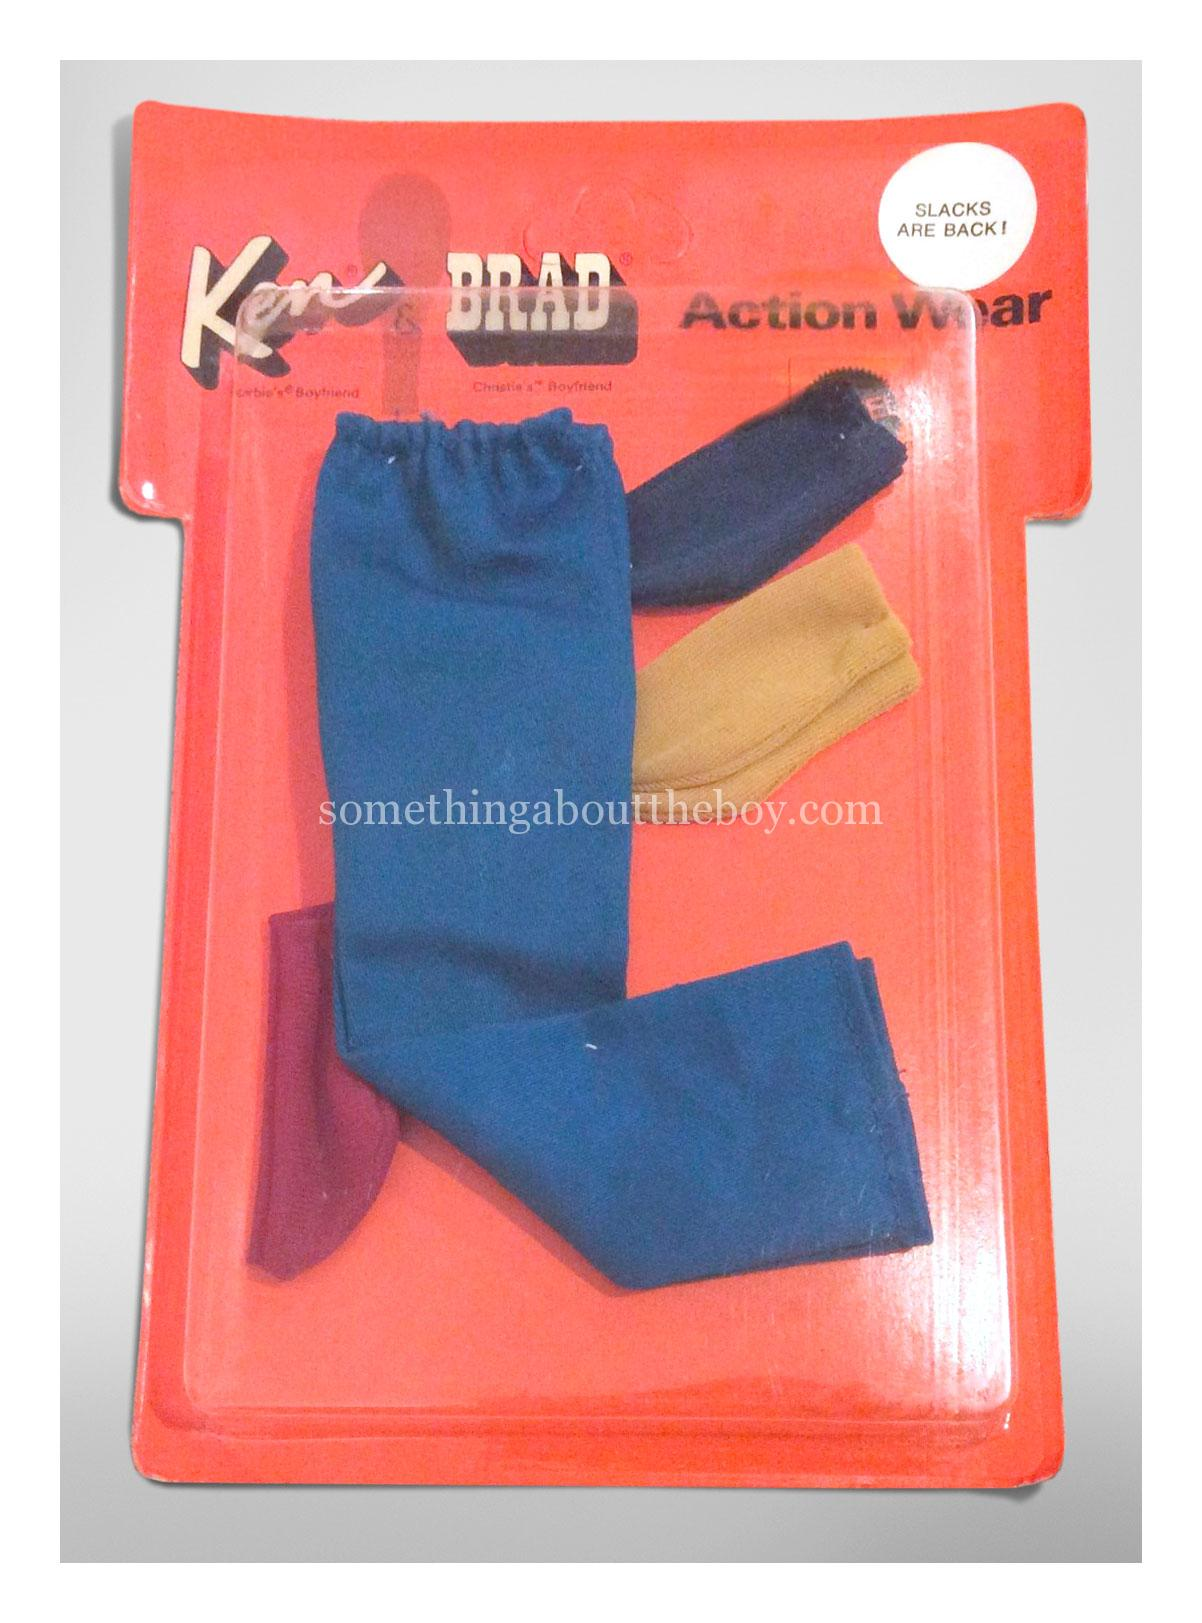 1971 Action Wear Slacks Are Back! in original packaging